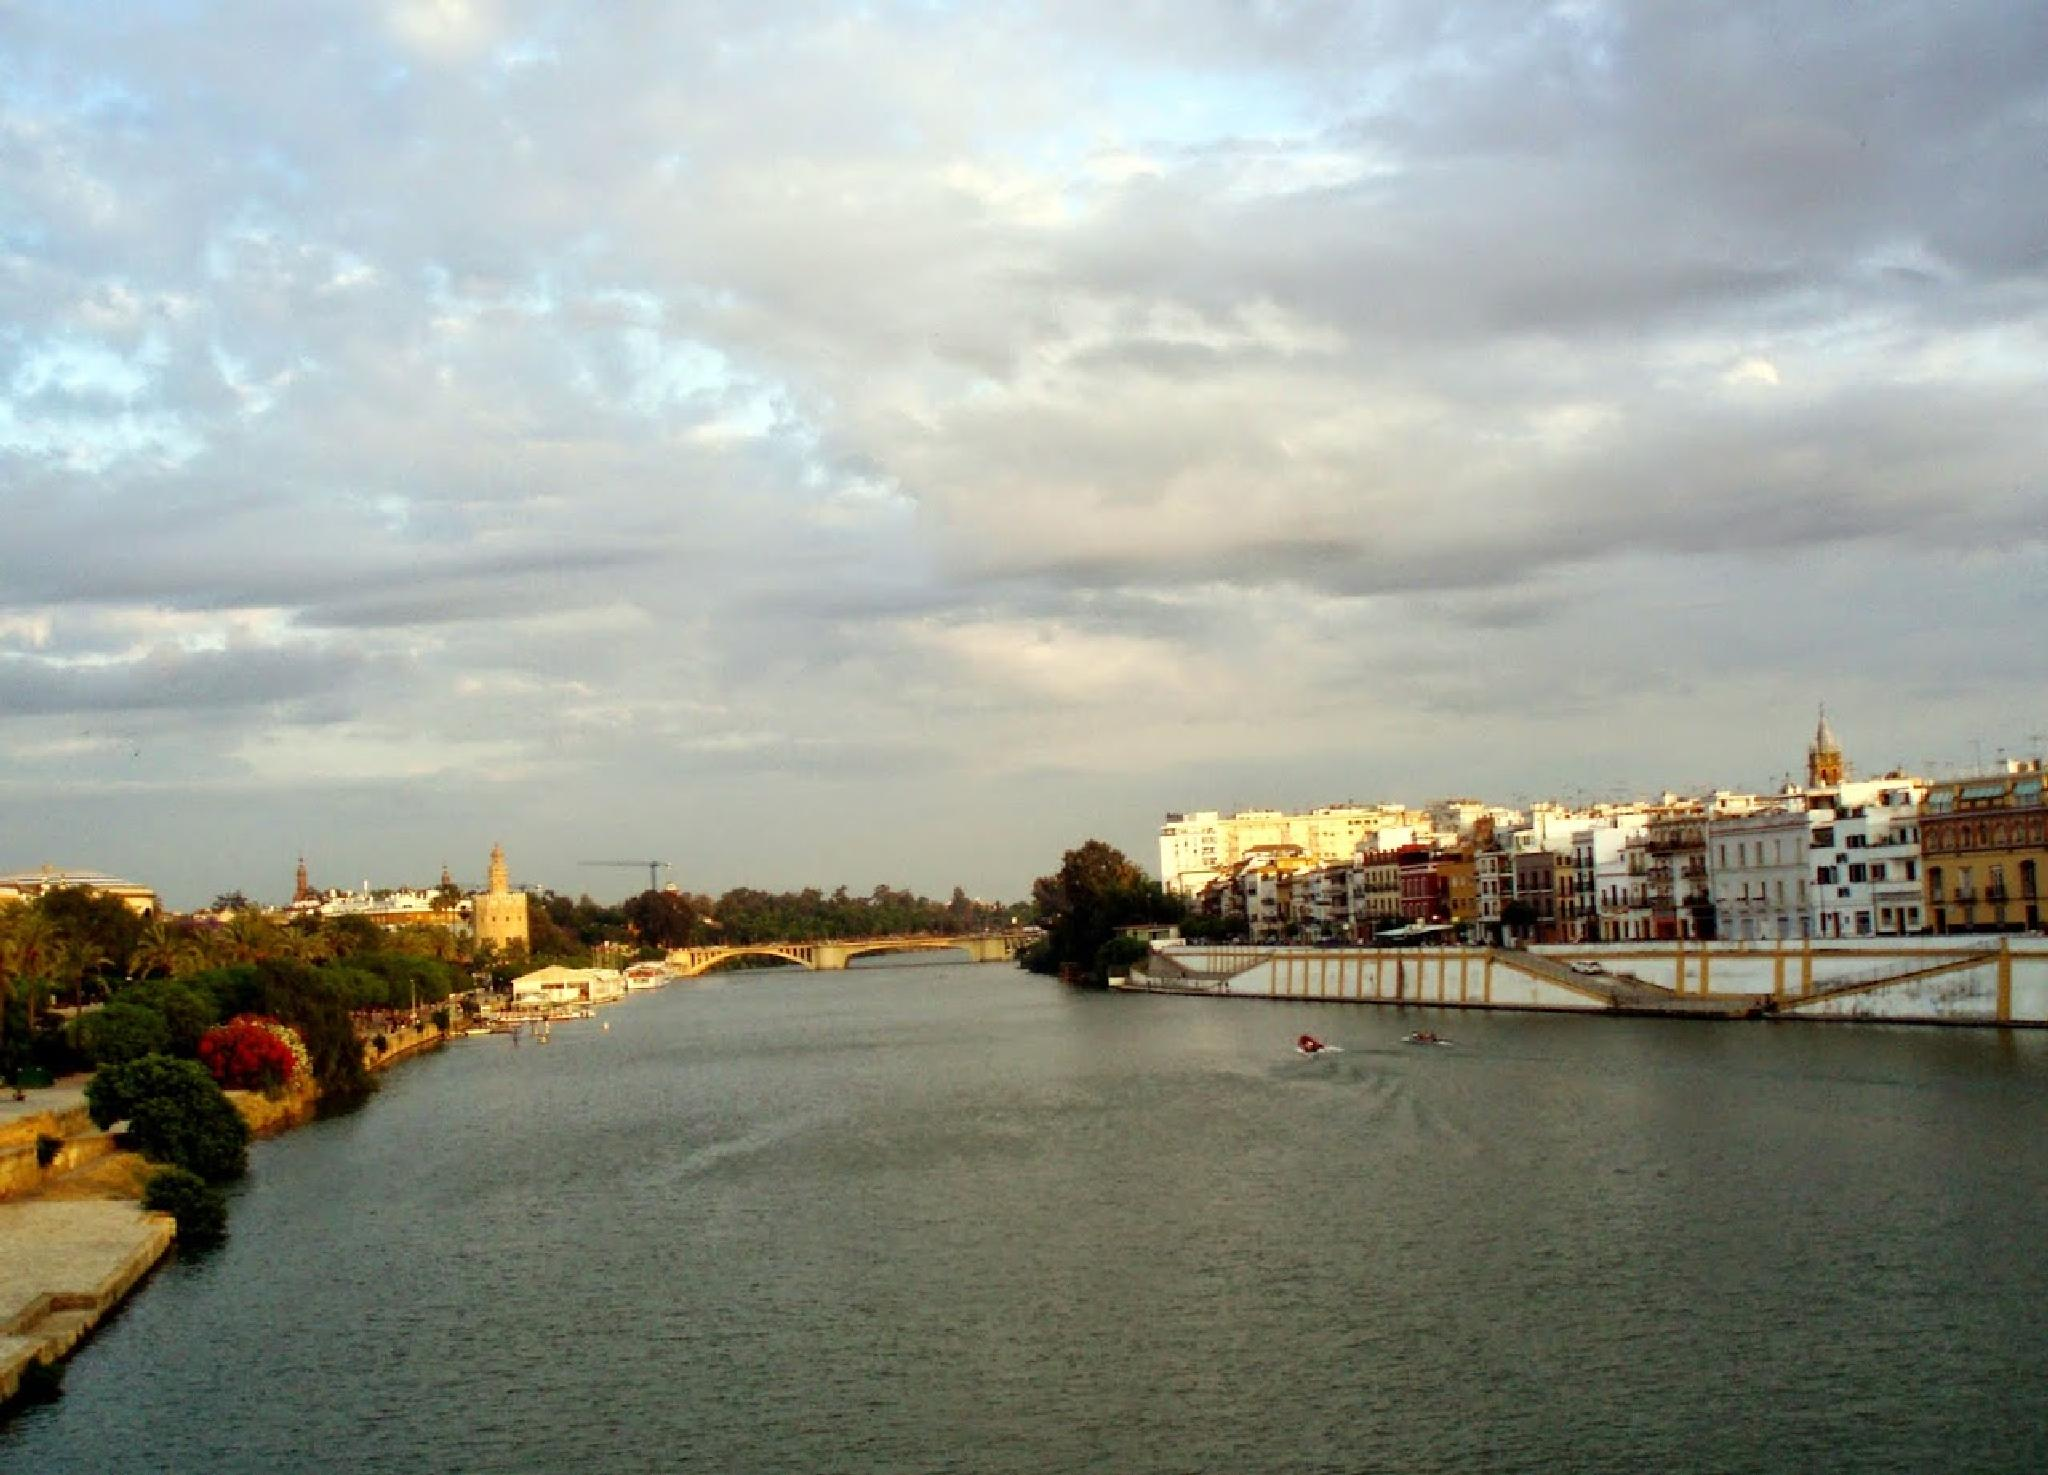 River view from Triana Bridge  by aida.carpena